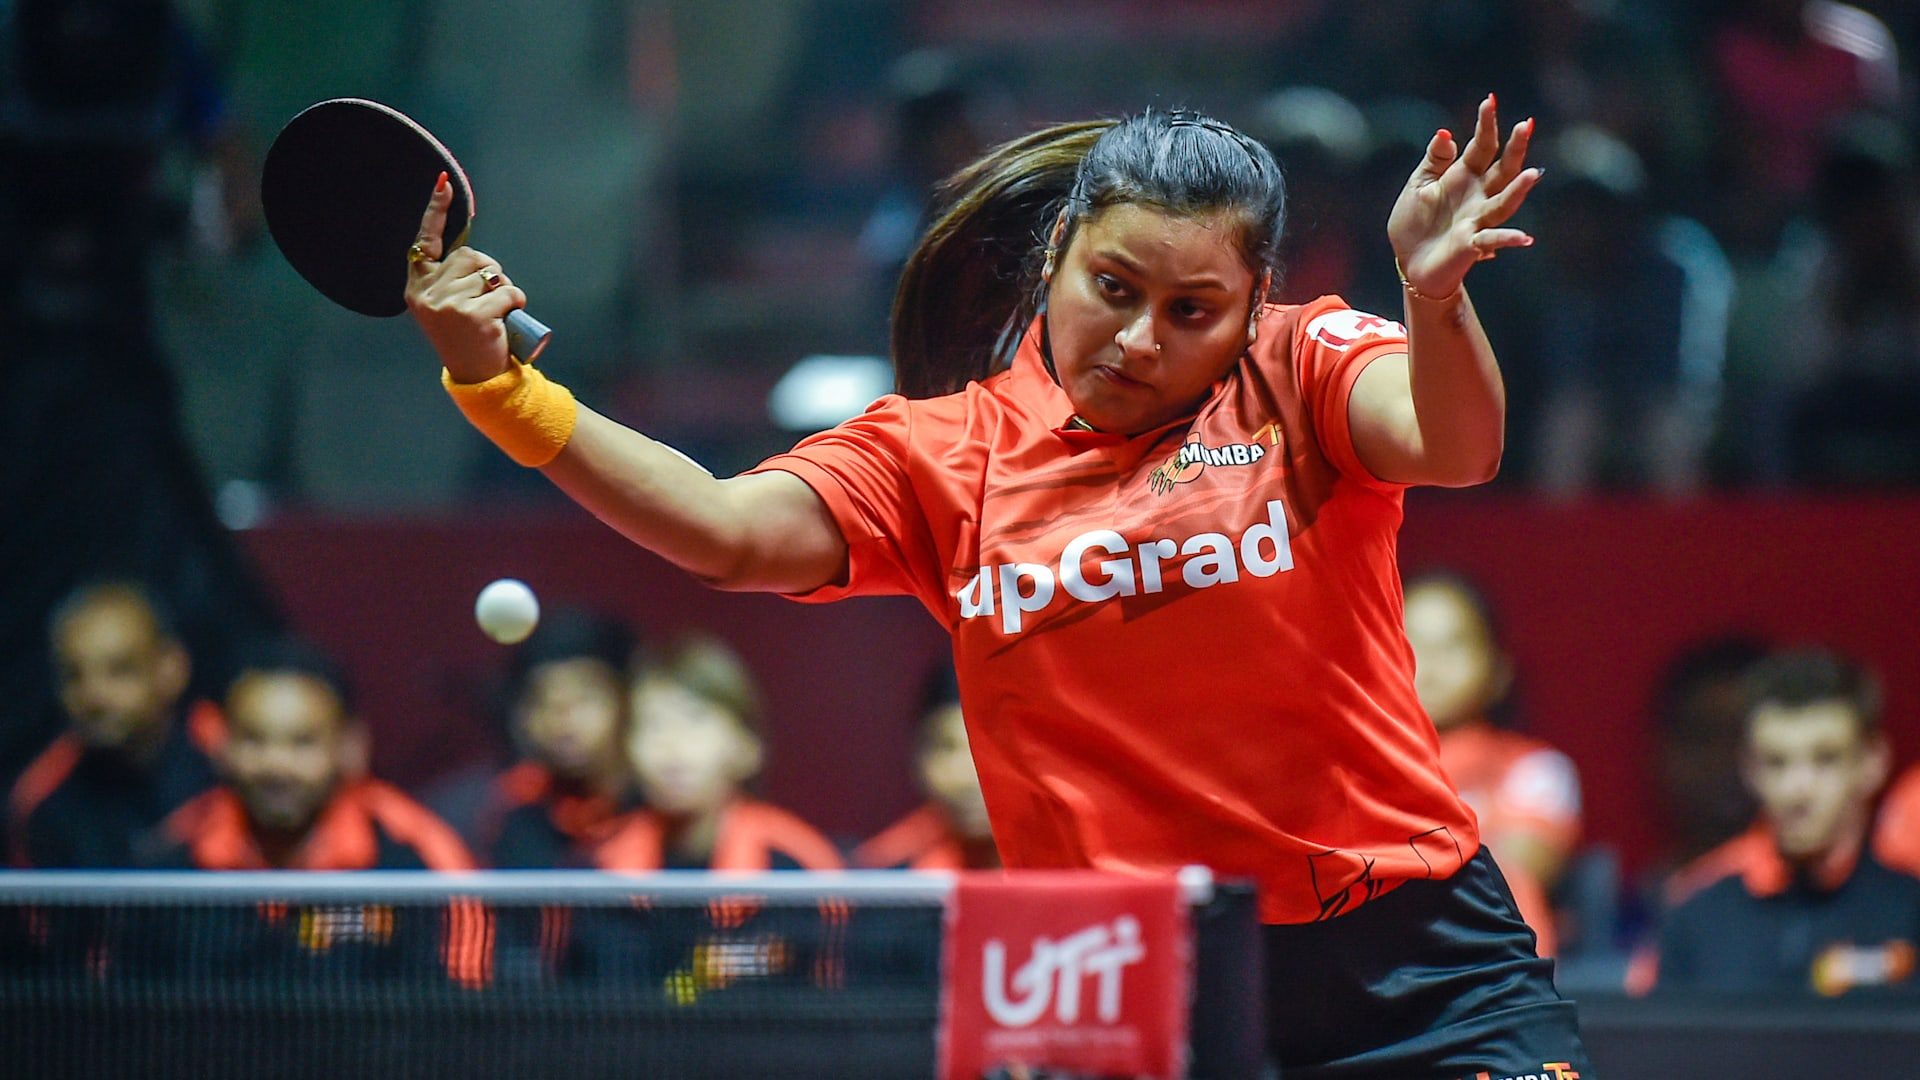 Sutirtha Mukherjee in action during UTT(Ultimate Table Tennis League)